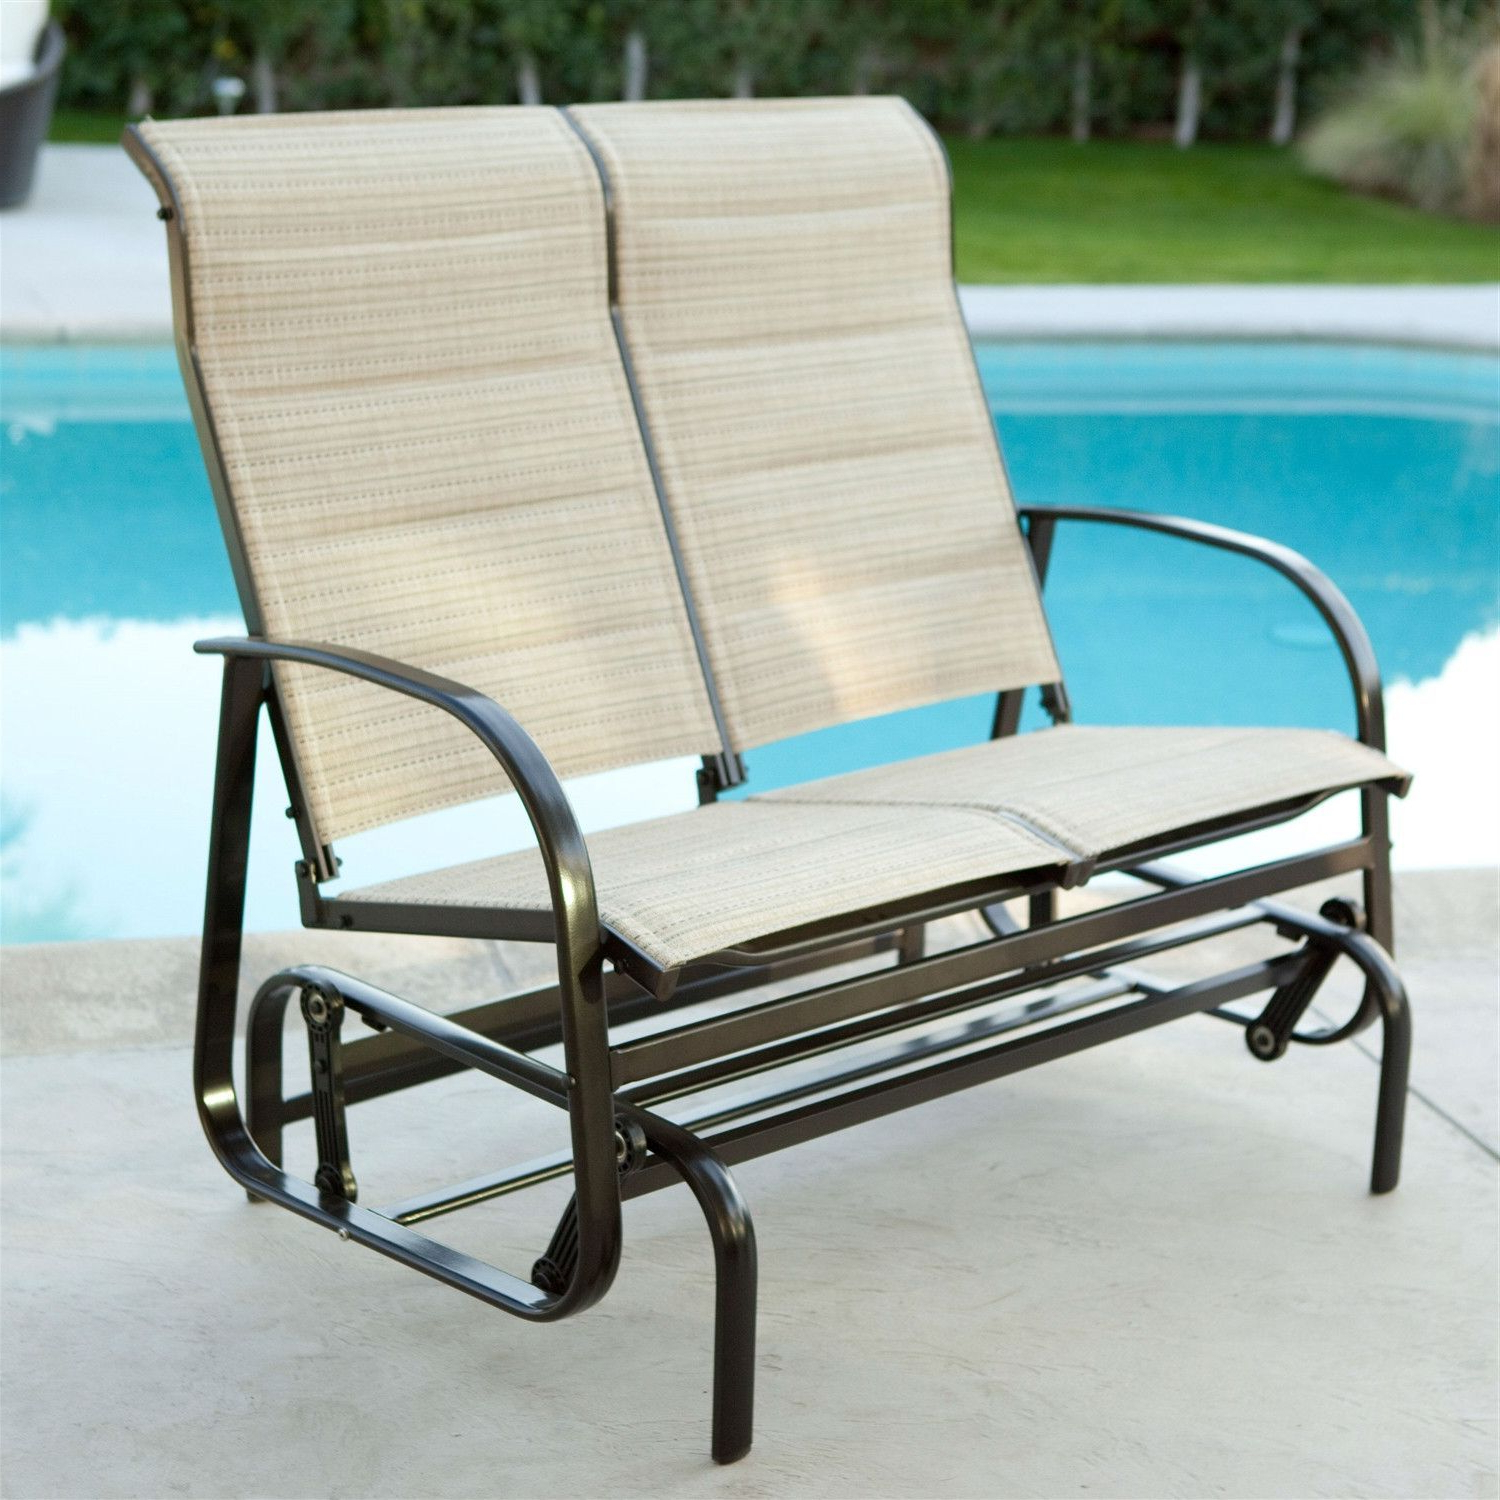 Outdoor Glider Patio Chair Loveseat With Padded Sling Seats With Regard To Current Padded Sling Double Glider Benches (View 21 of 30)